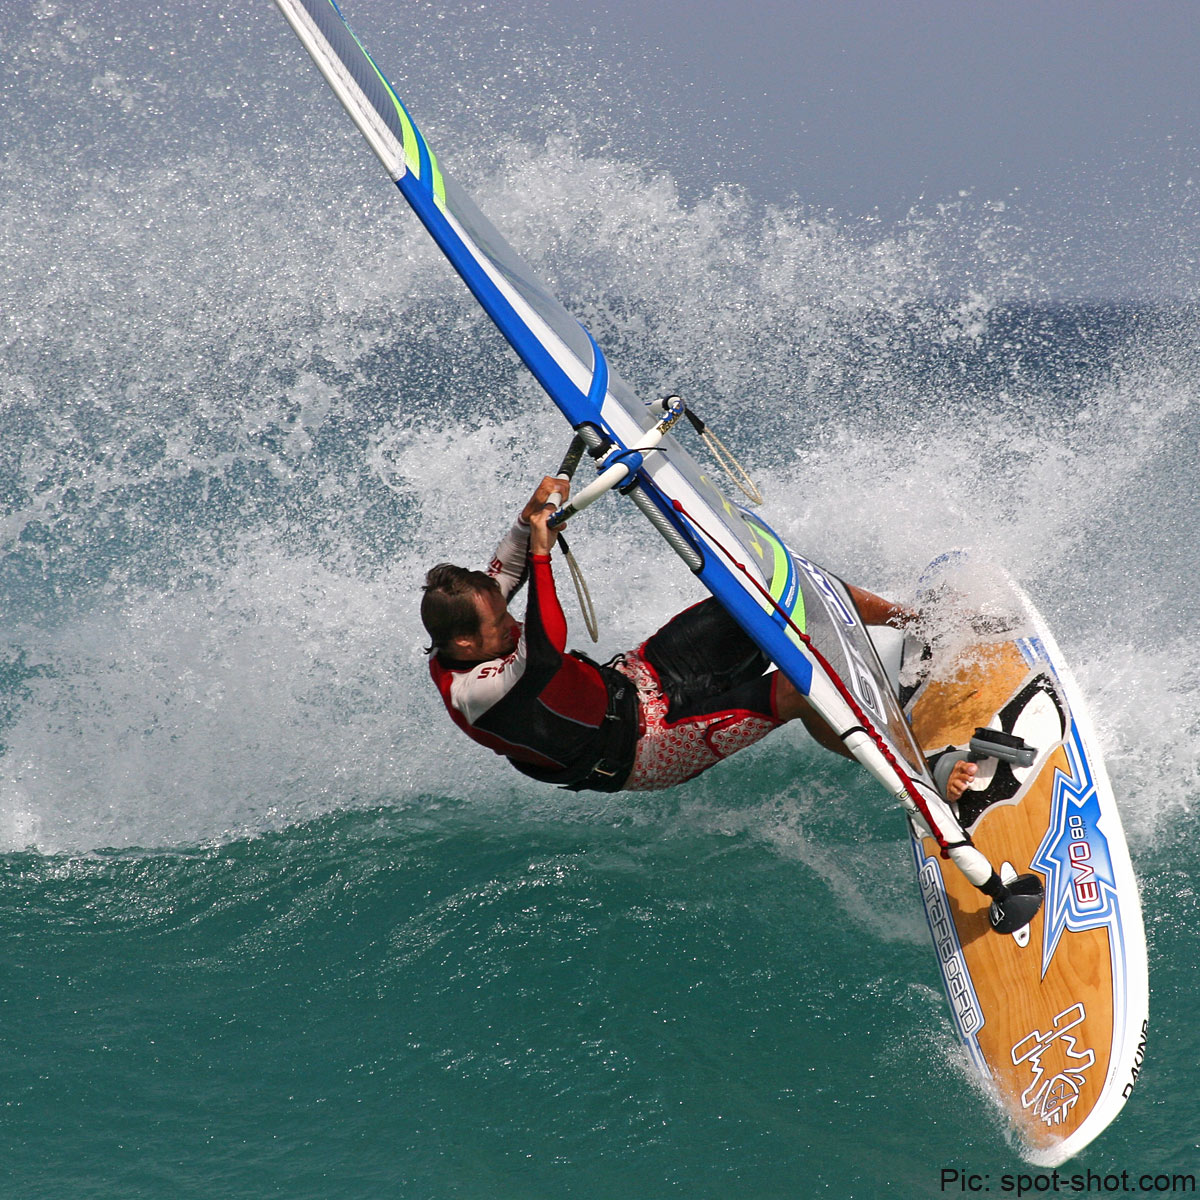 Wave action in Fuerte on a Challenger sail a few years ago (Pic: Roger Protzen)